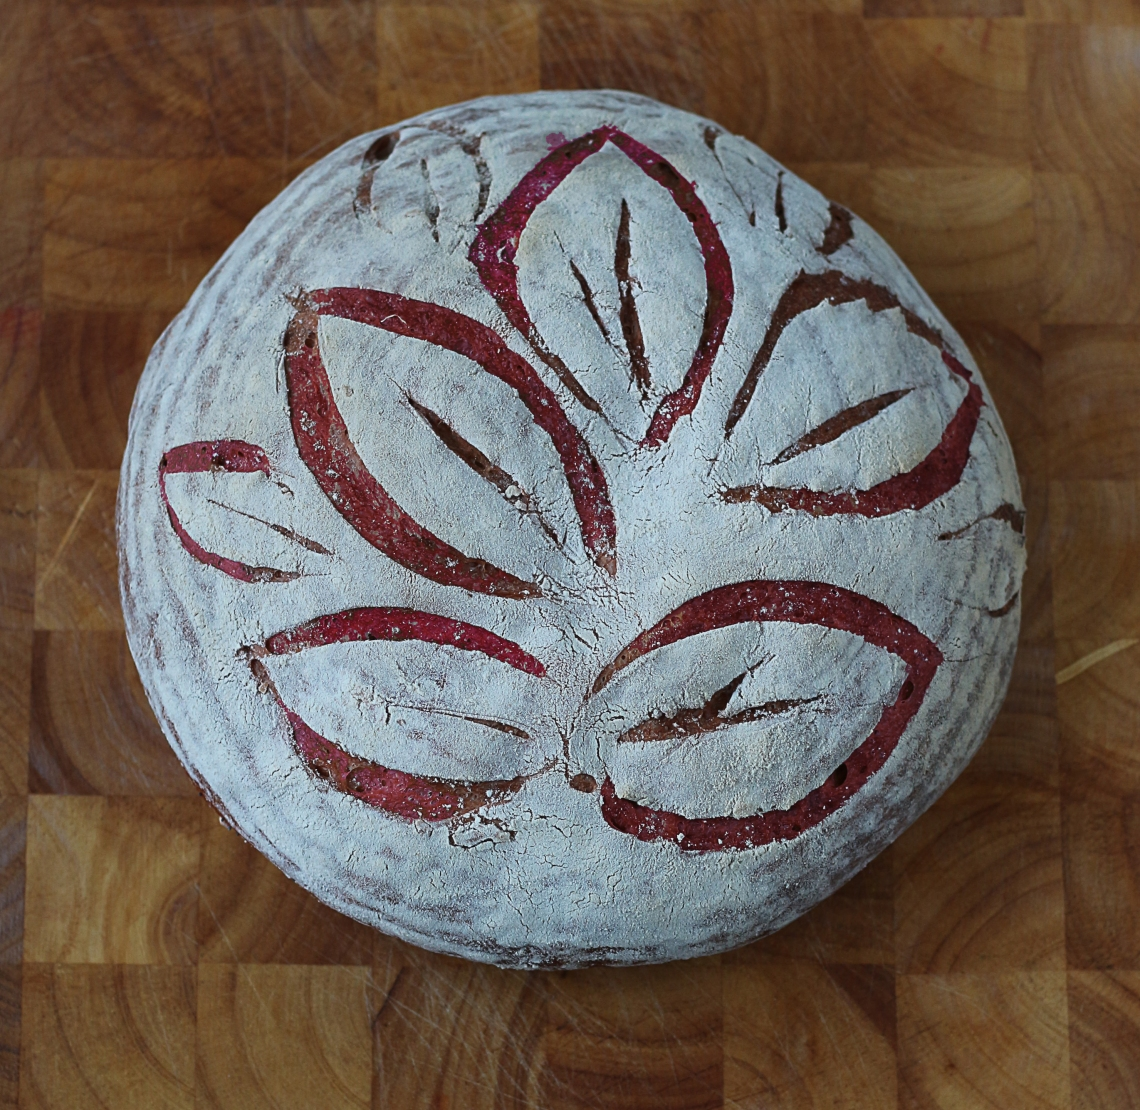 Beet loaf, score with a leaf pattern by Ink Sugar Spice